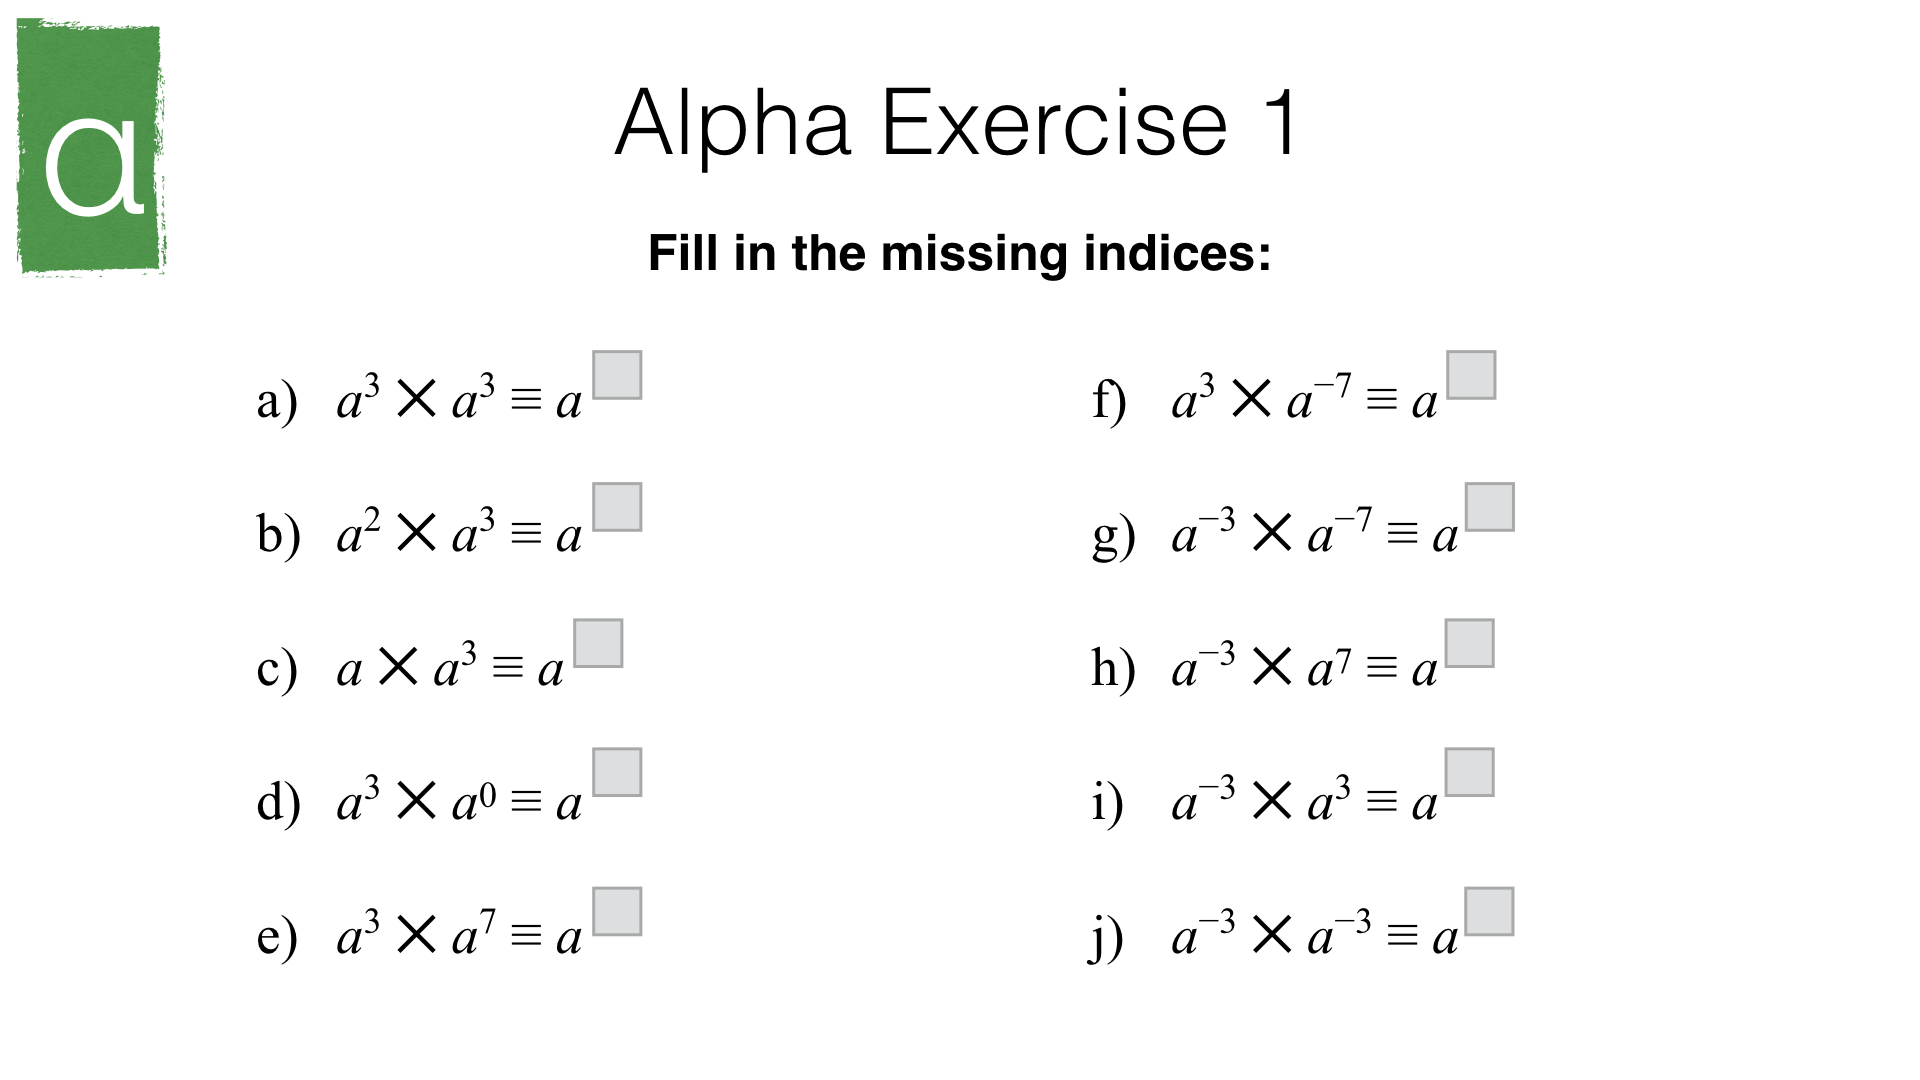 A4i Index Laws And Solving Equations Involving Indices